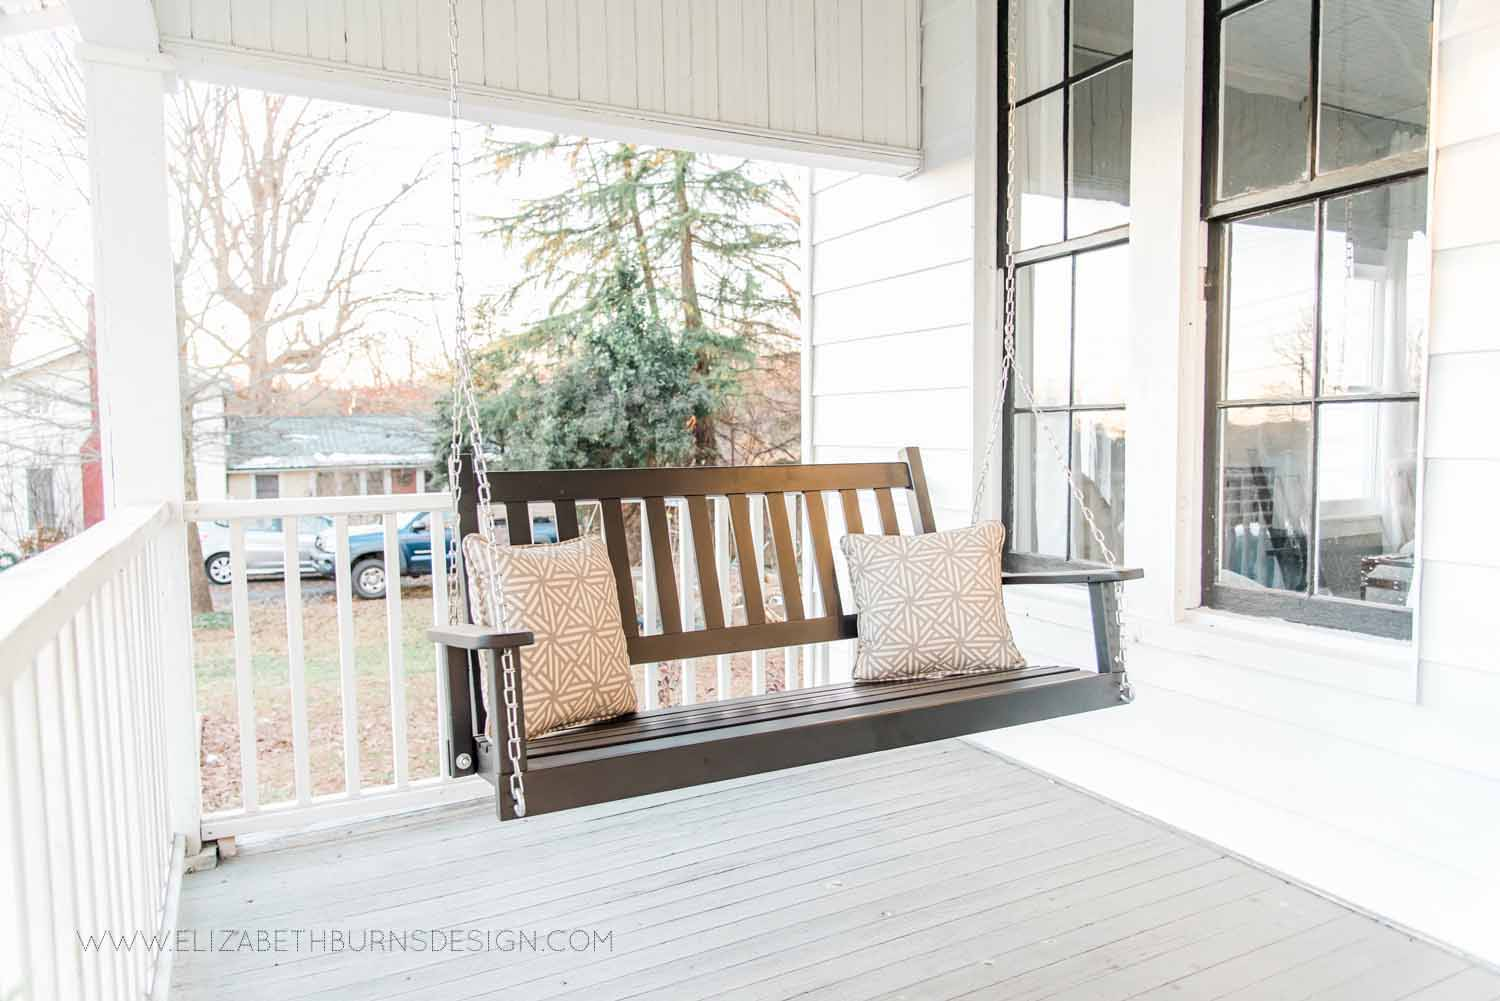 Elizabeth Burns Design Raleigh Interior Designer  Farmhouse Fixer Upper Cottage Renovation, Benjamin Moore Wythe Blue Front Door Front Porch Curb Appeal (5).jpg